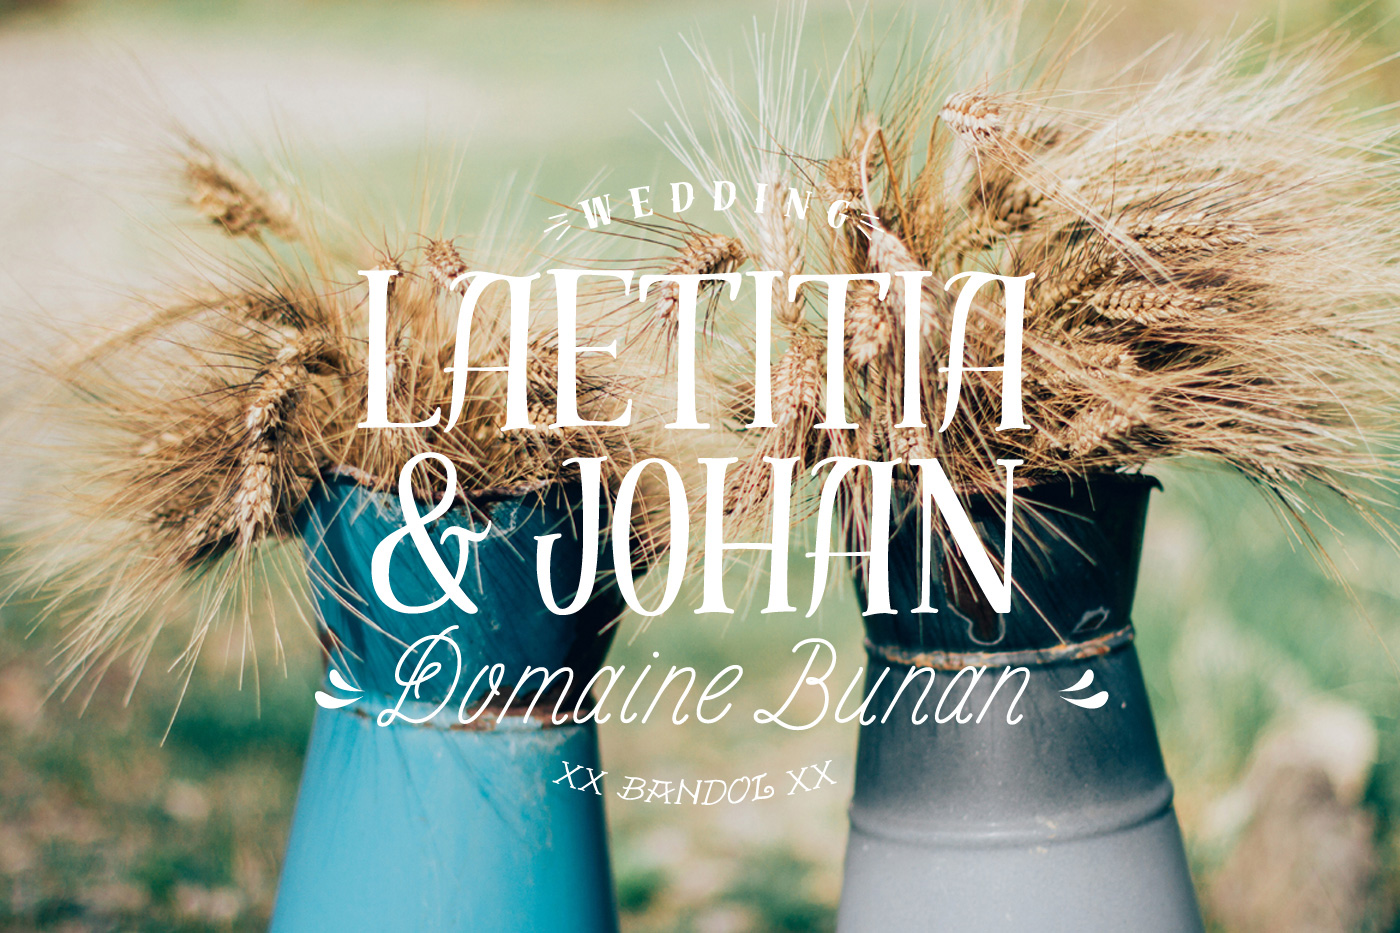 L+J_wedding_bandol_bunan.jpg